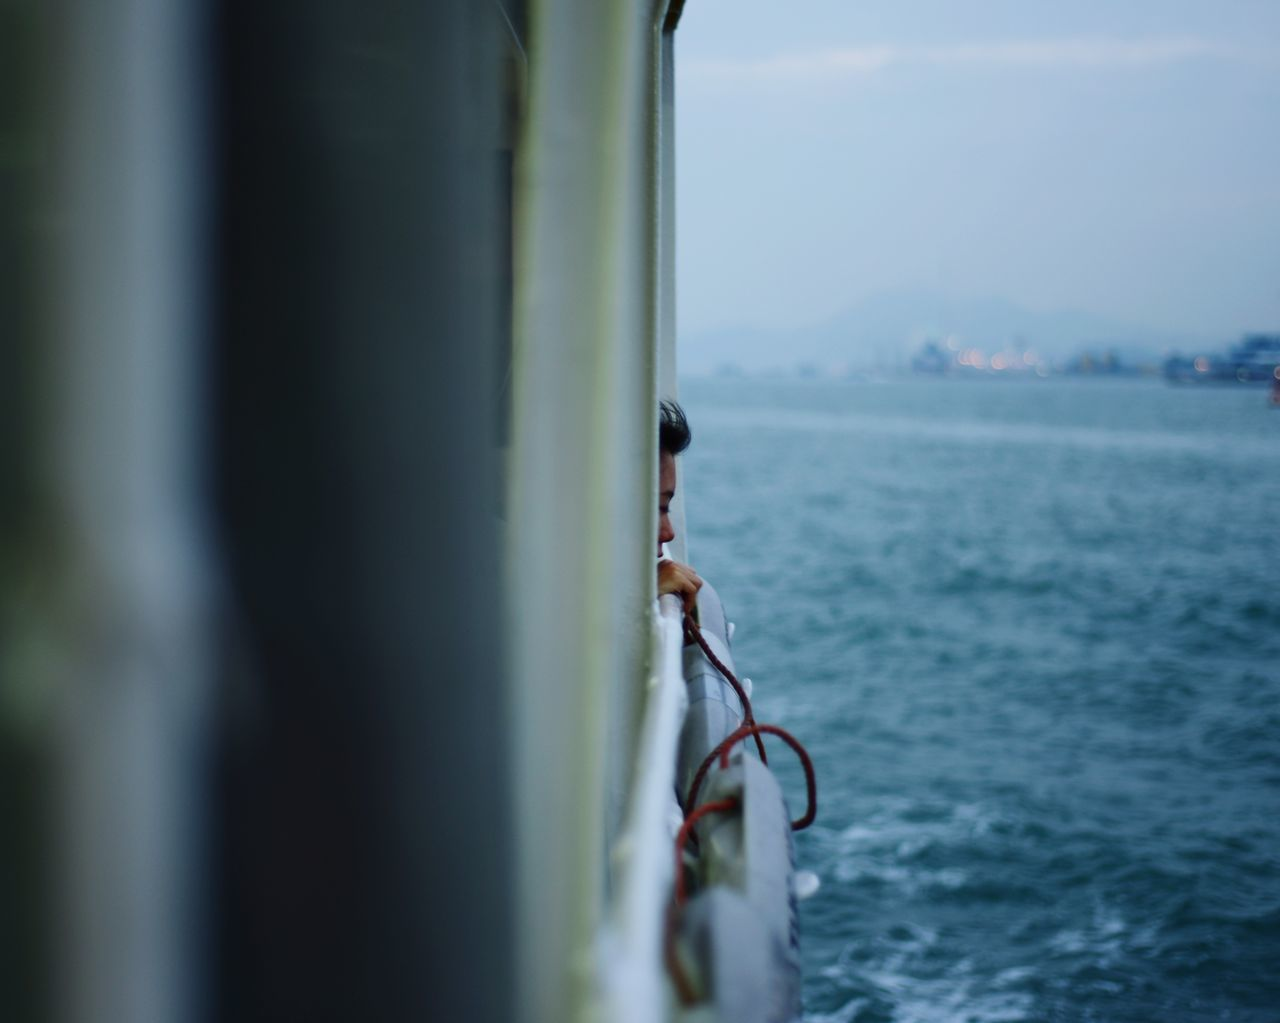 Sea Focus On Foreground Water Nautical Vessel Day Sky Close-up Outdoors Woman Boat HongKong Hong Kong Dreaming Wind In The Hair Blue Evening Light Romantic Memories Nature